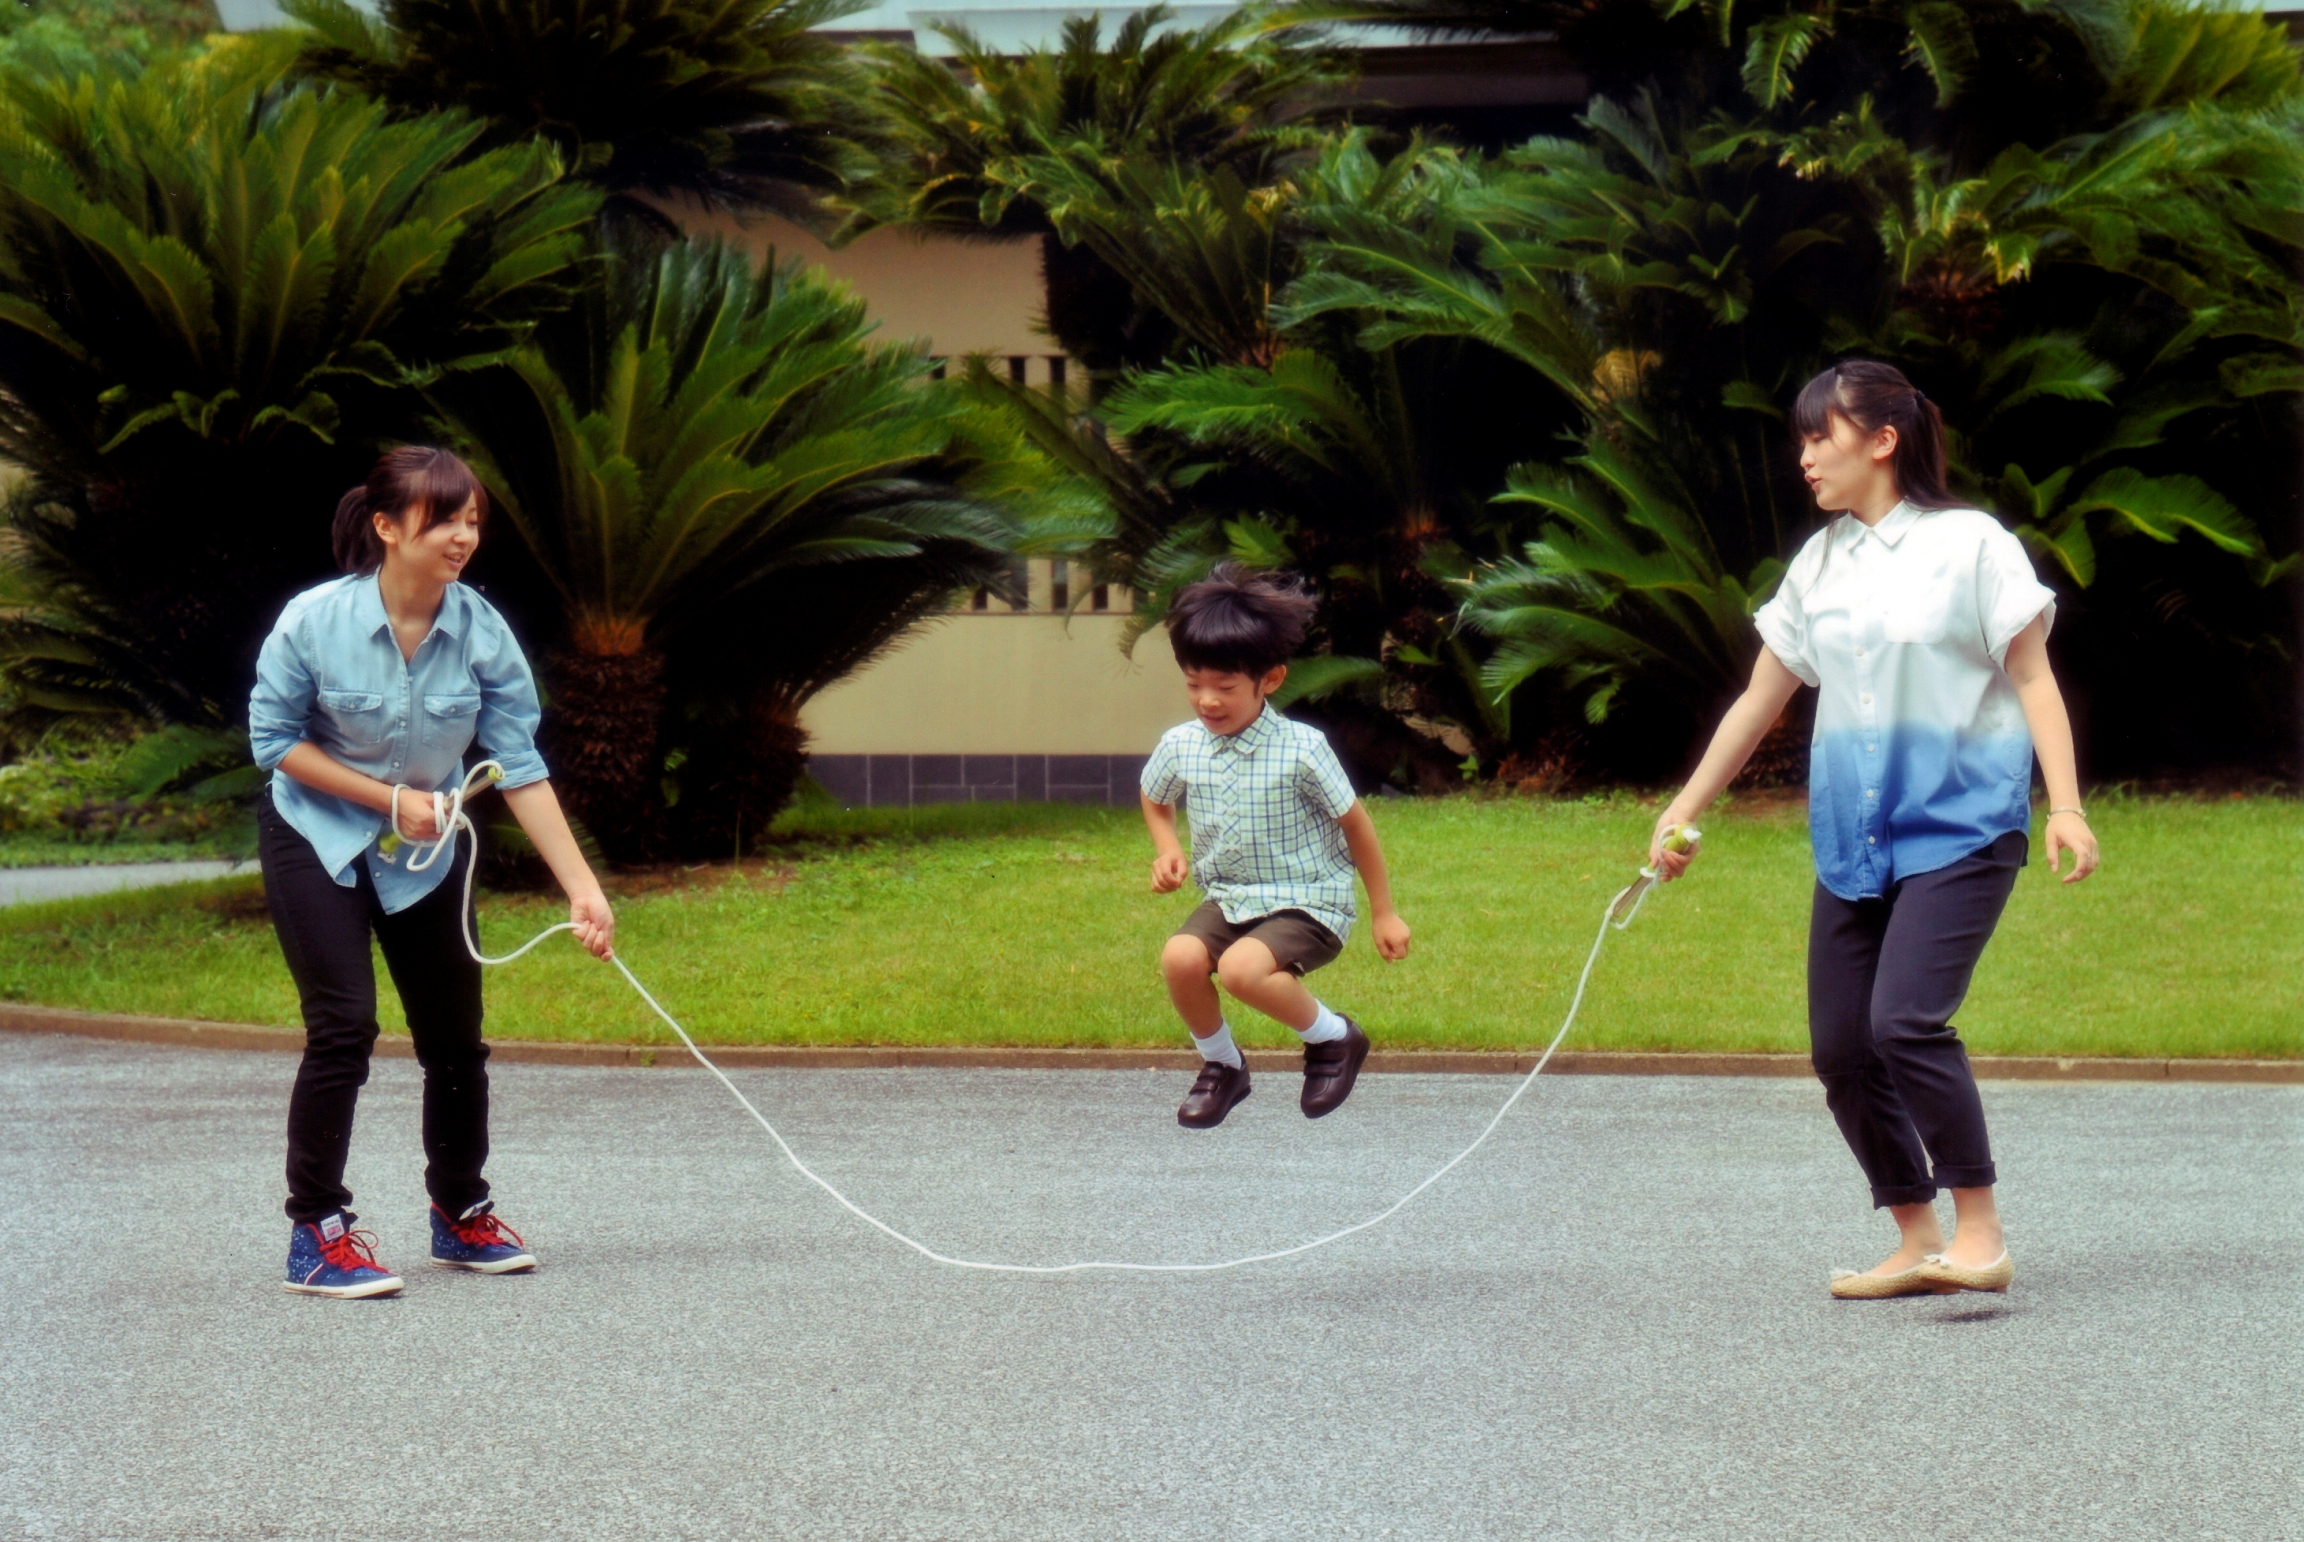 A young boy jumps rope that two young girls are swinging